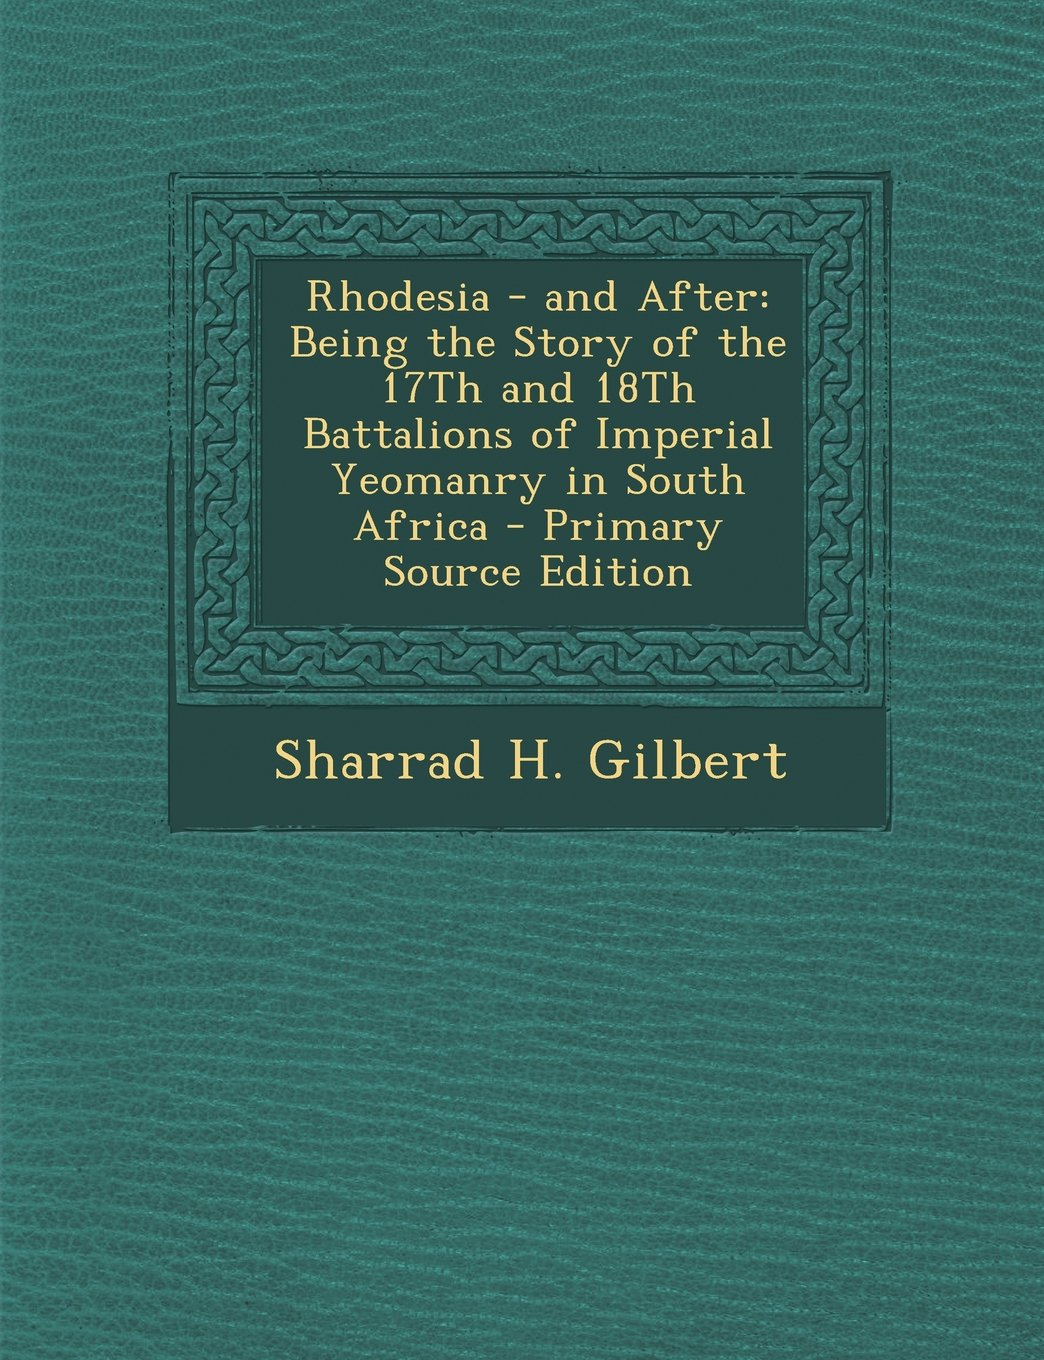 Rhodesia - And After: Being the Story of the 17th and 18th Battalions of Imperial Yeomanry in South Africa PDF